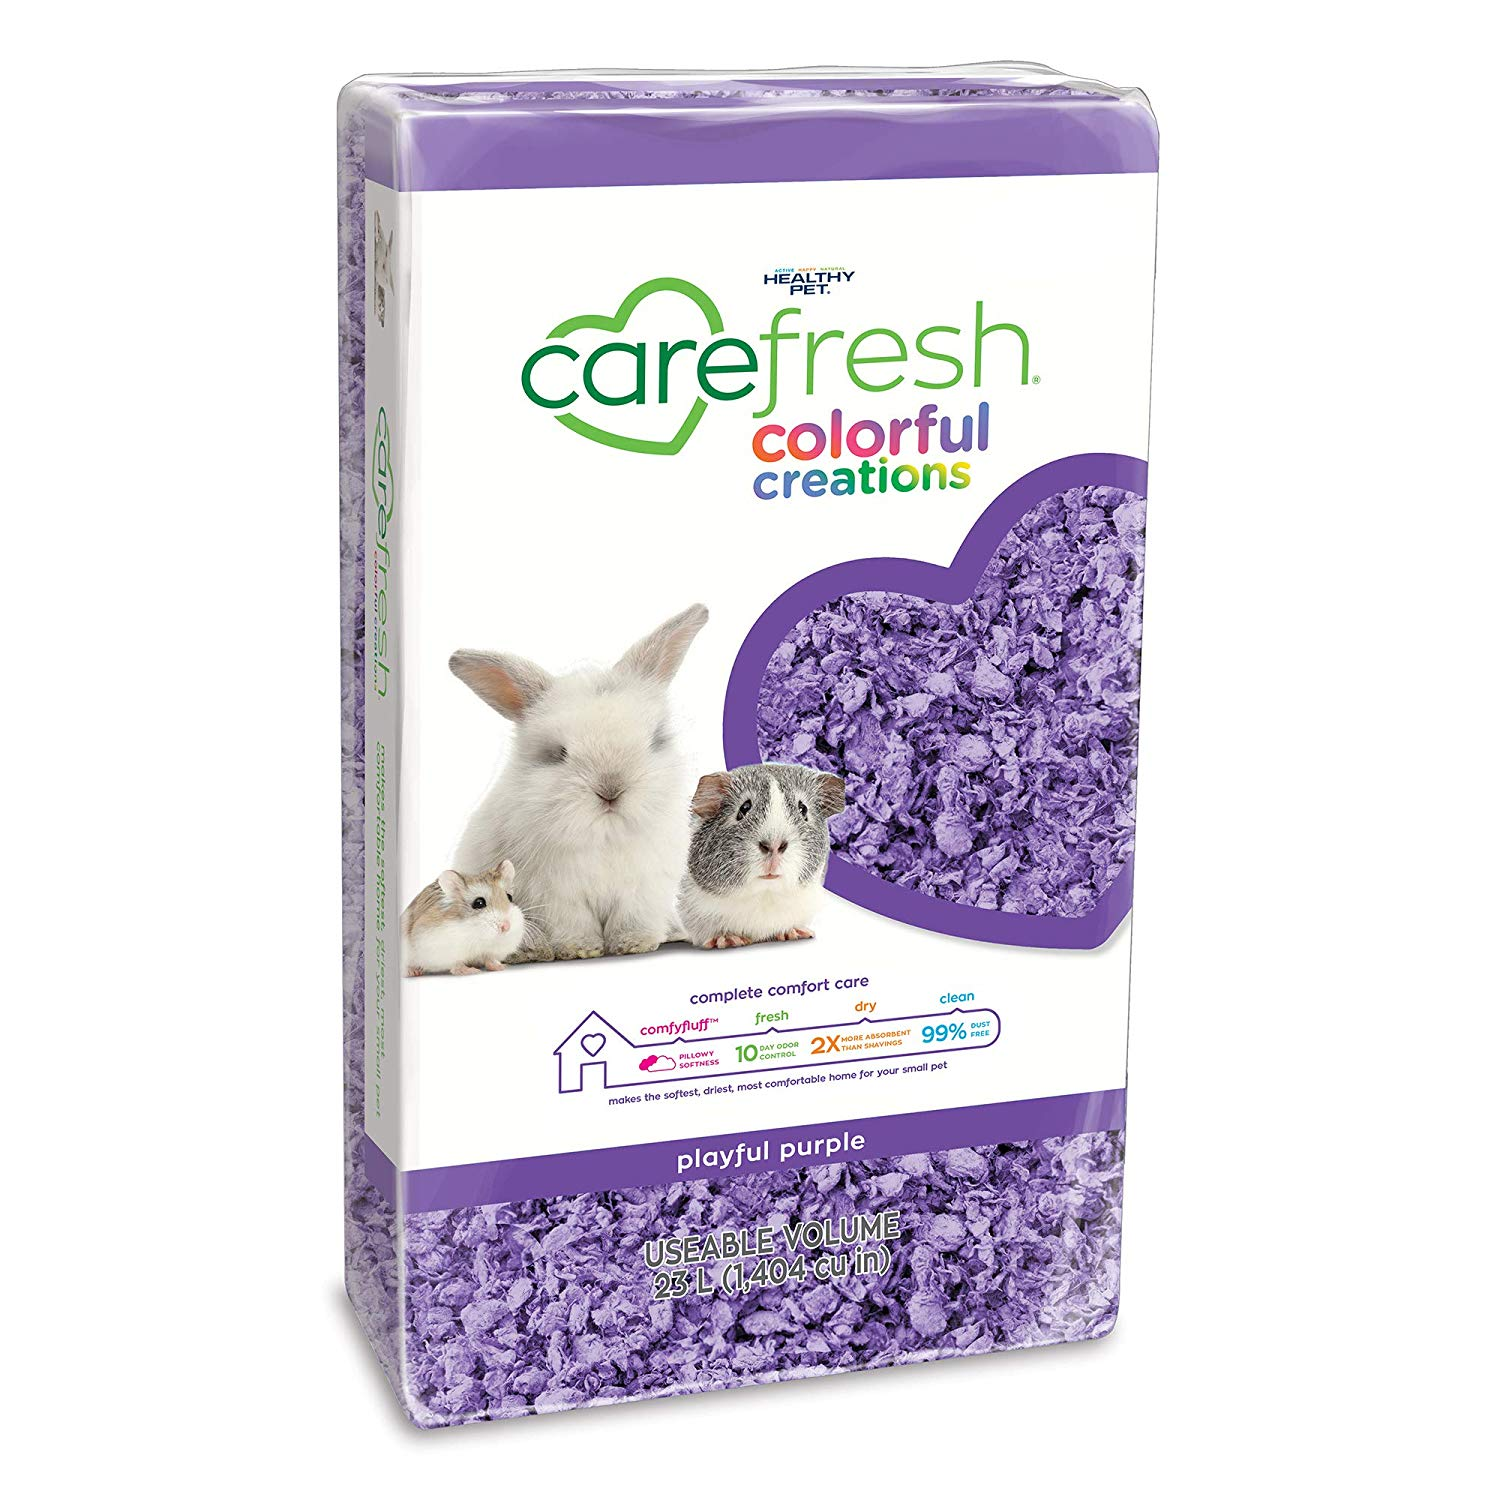 CareFresh Colorful Creations Small Animal Bedding, Purple, 23-L (Size: 23-L) Image